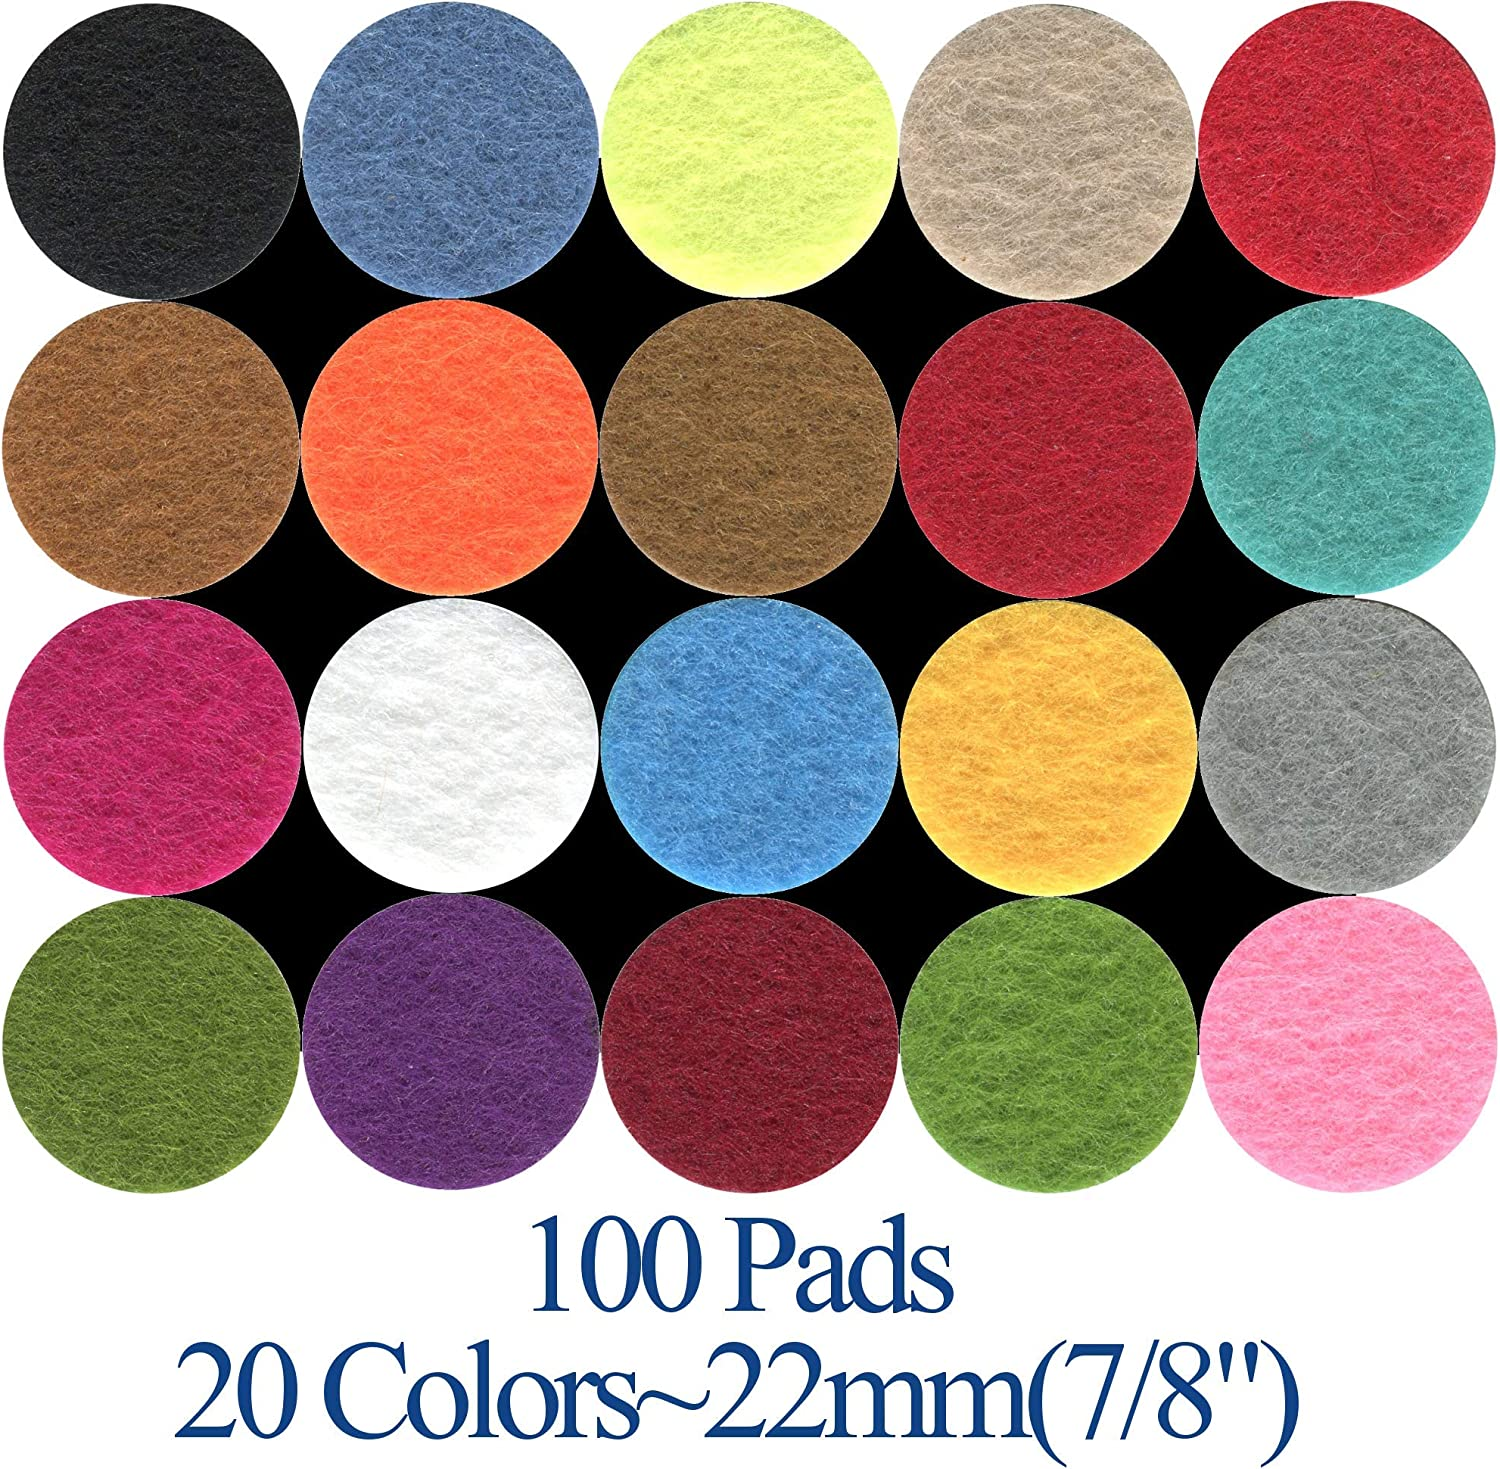 """Springcreek USA (100 Pad Value Pack) Aromatherapy Essential Oil Diffuser Locket Necklace Refill Pads, 7/8"""" (22mm) Diameter, 20 Assorted Colors"""